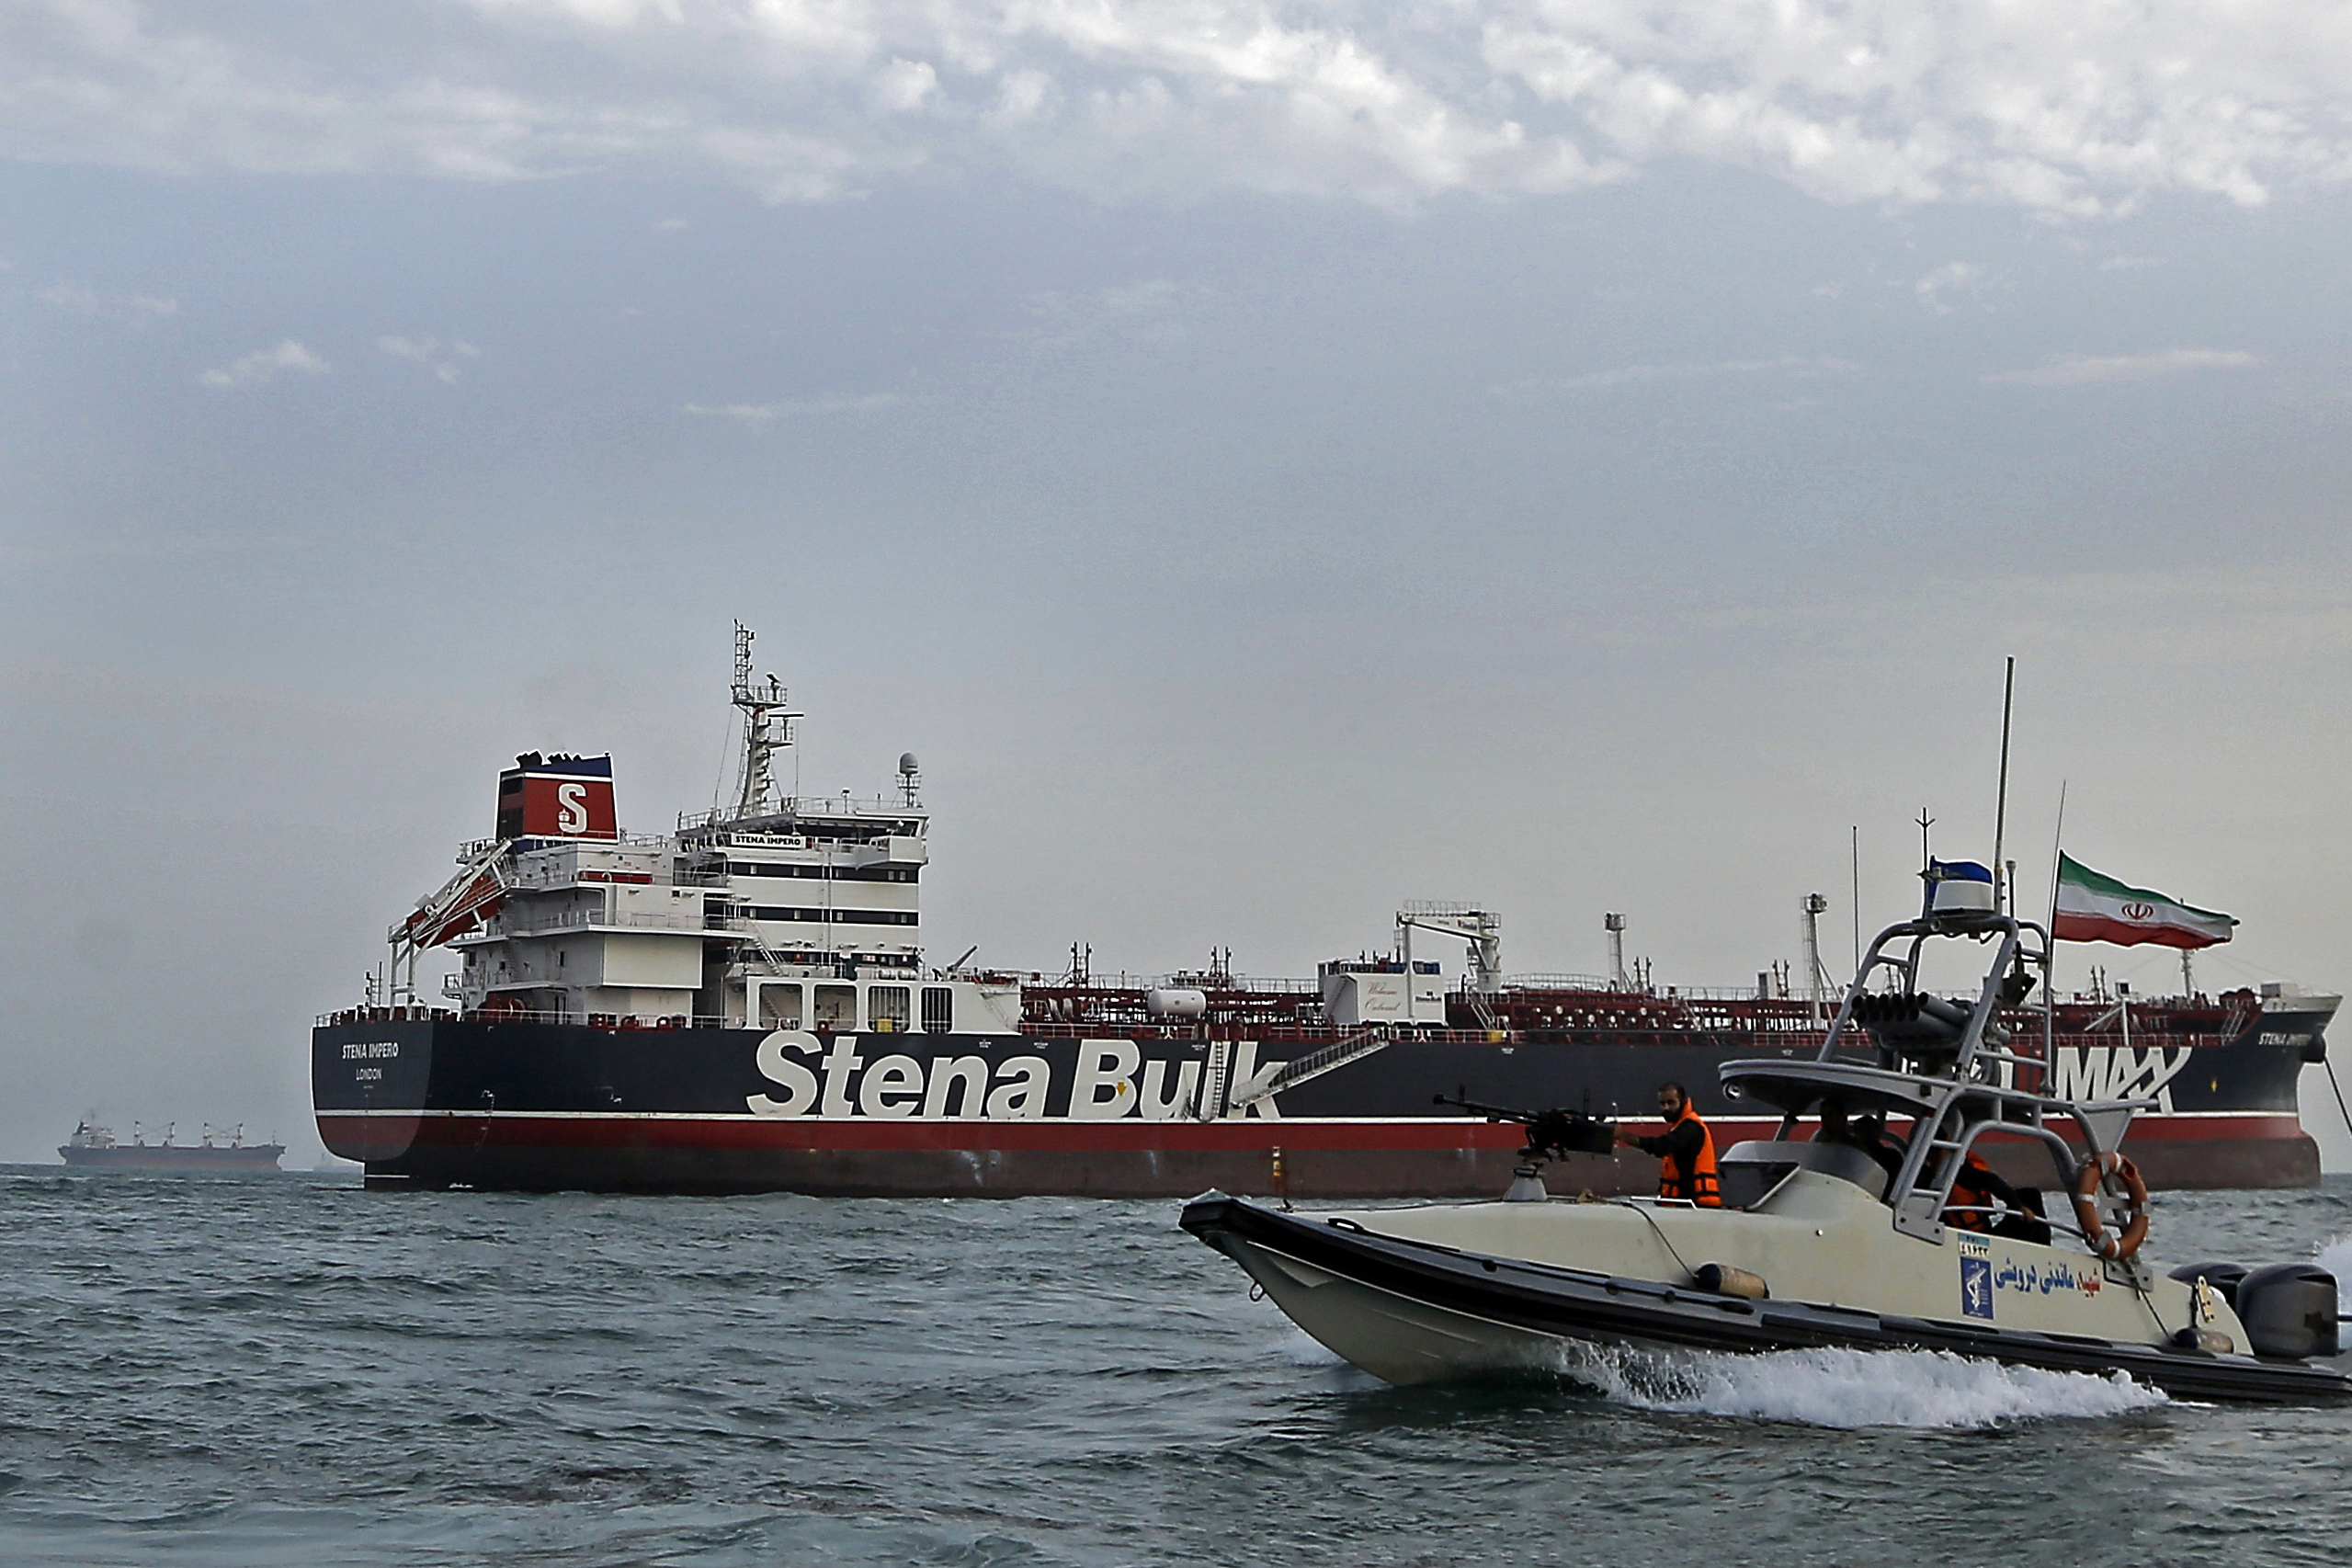 Swedish owner of oil tanker held by Iran: ship has not moved